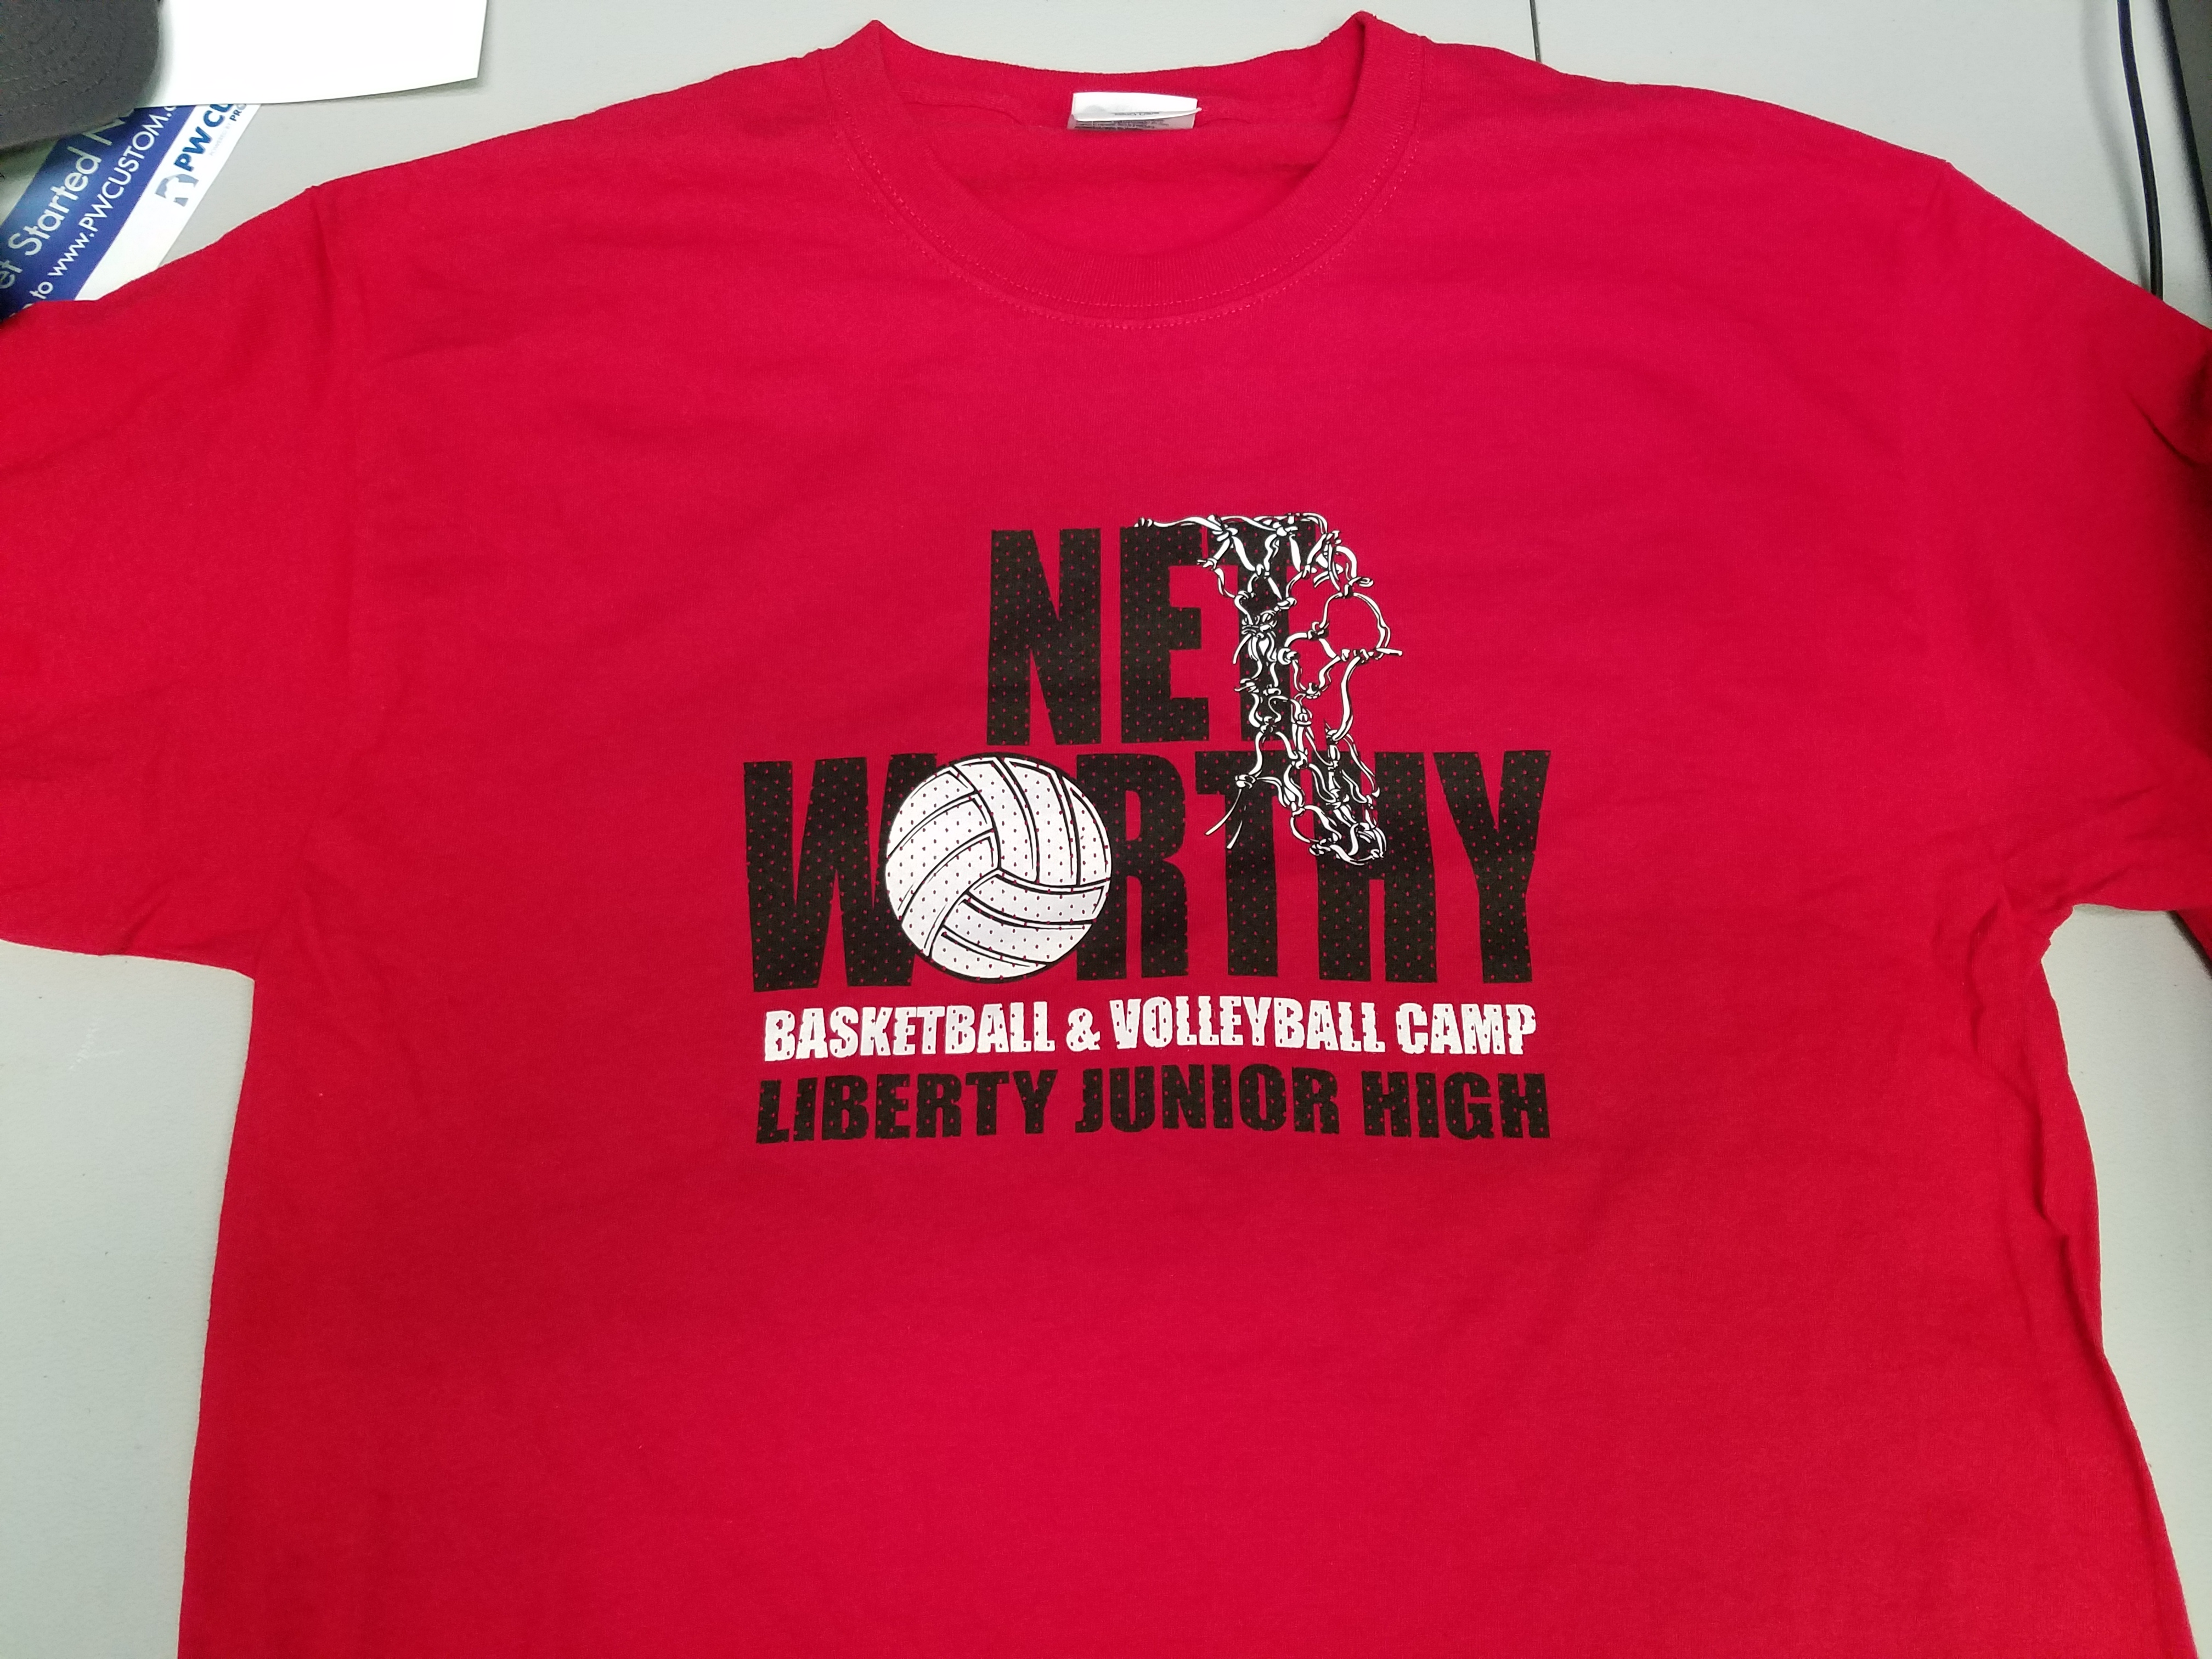 High School Camp Shirts